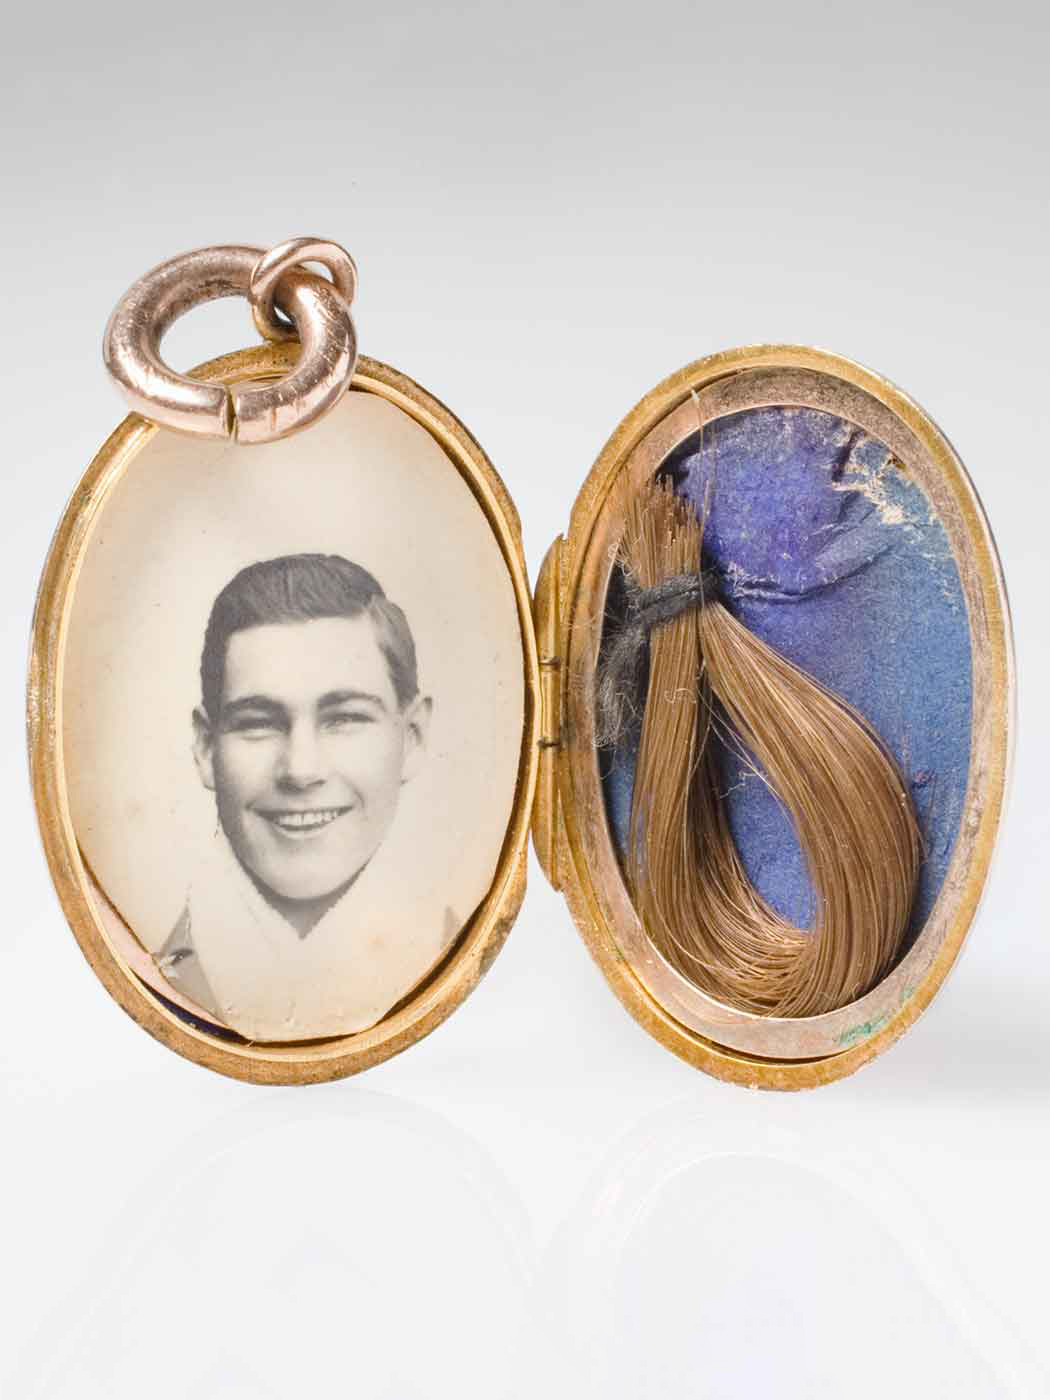 Open locket containing a black and white photo of a young man and a lock of hair. - click to view larger image